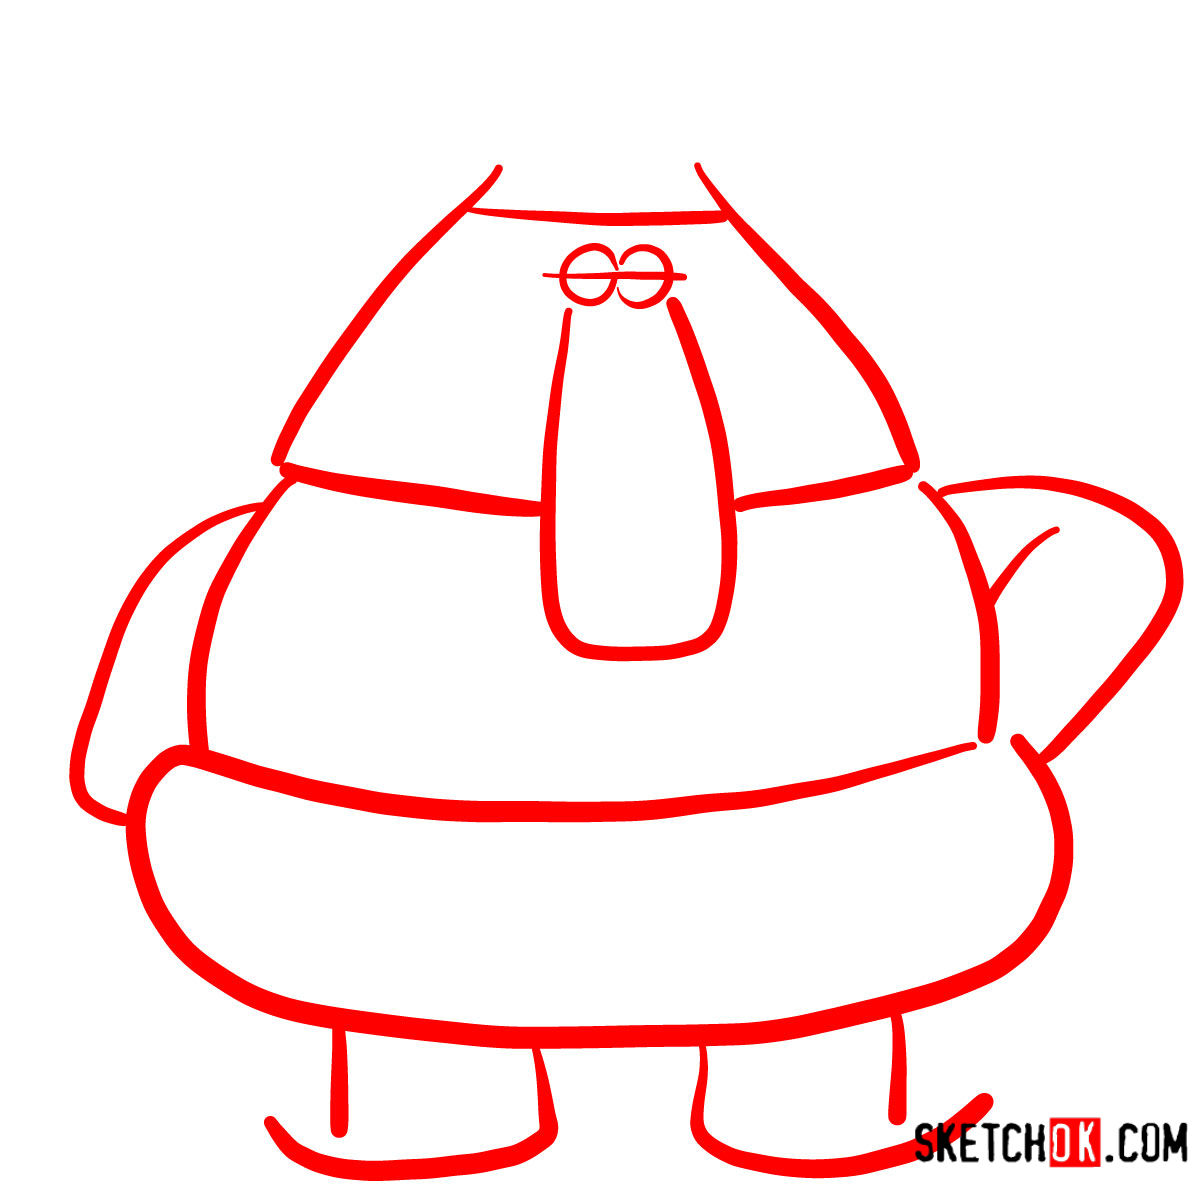 How to draw Gazpacho from Chowder series - step 01